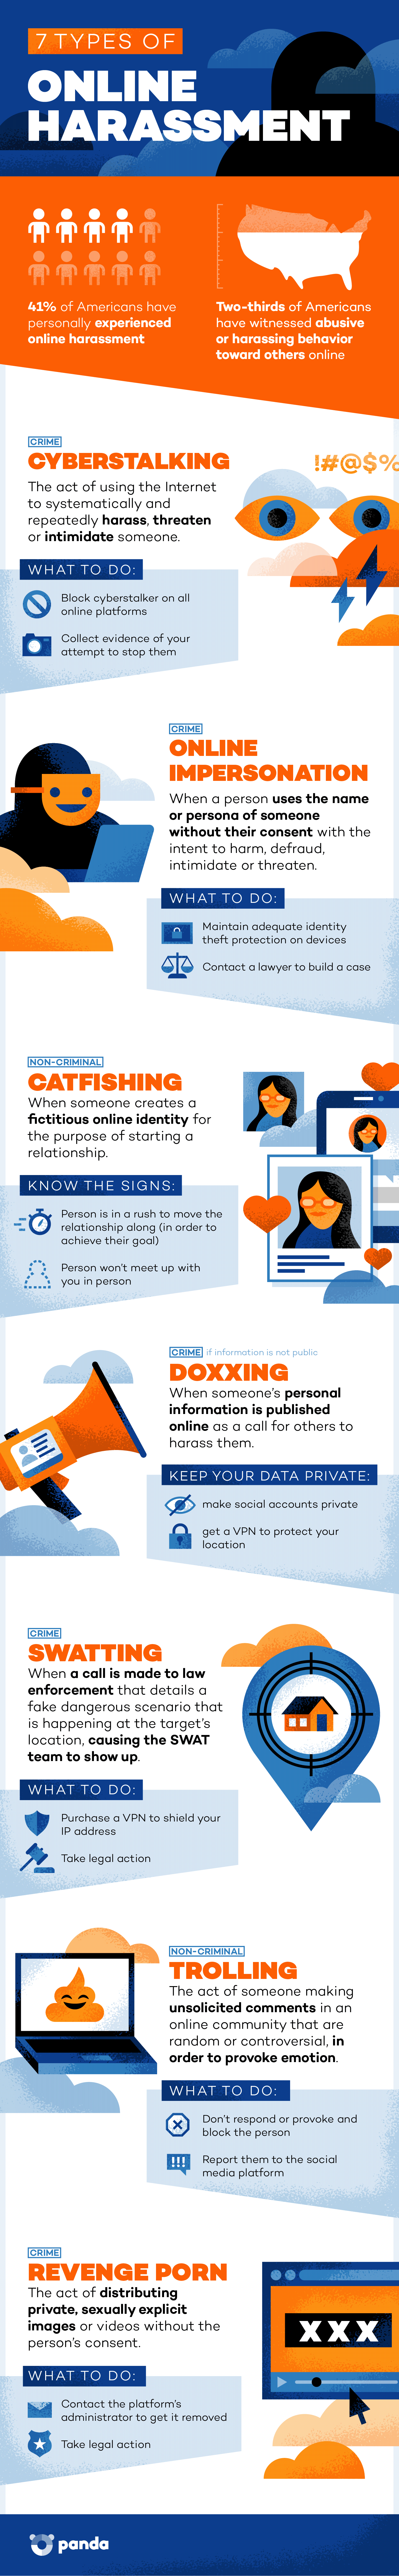 info on how to handle and prevent harassment